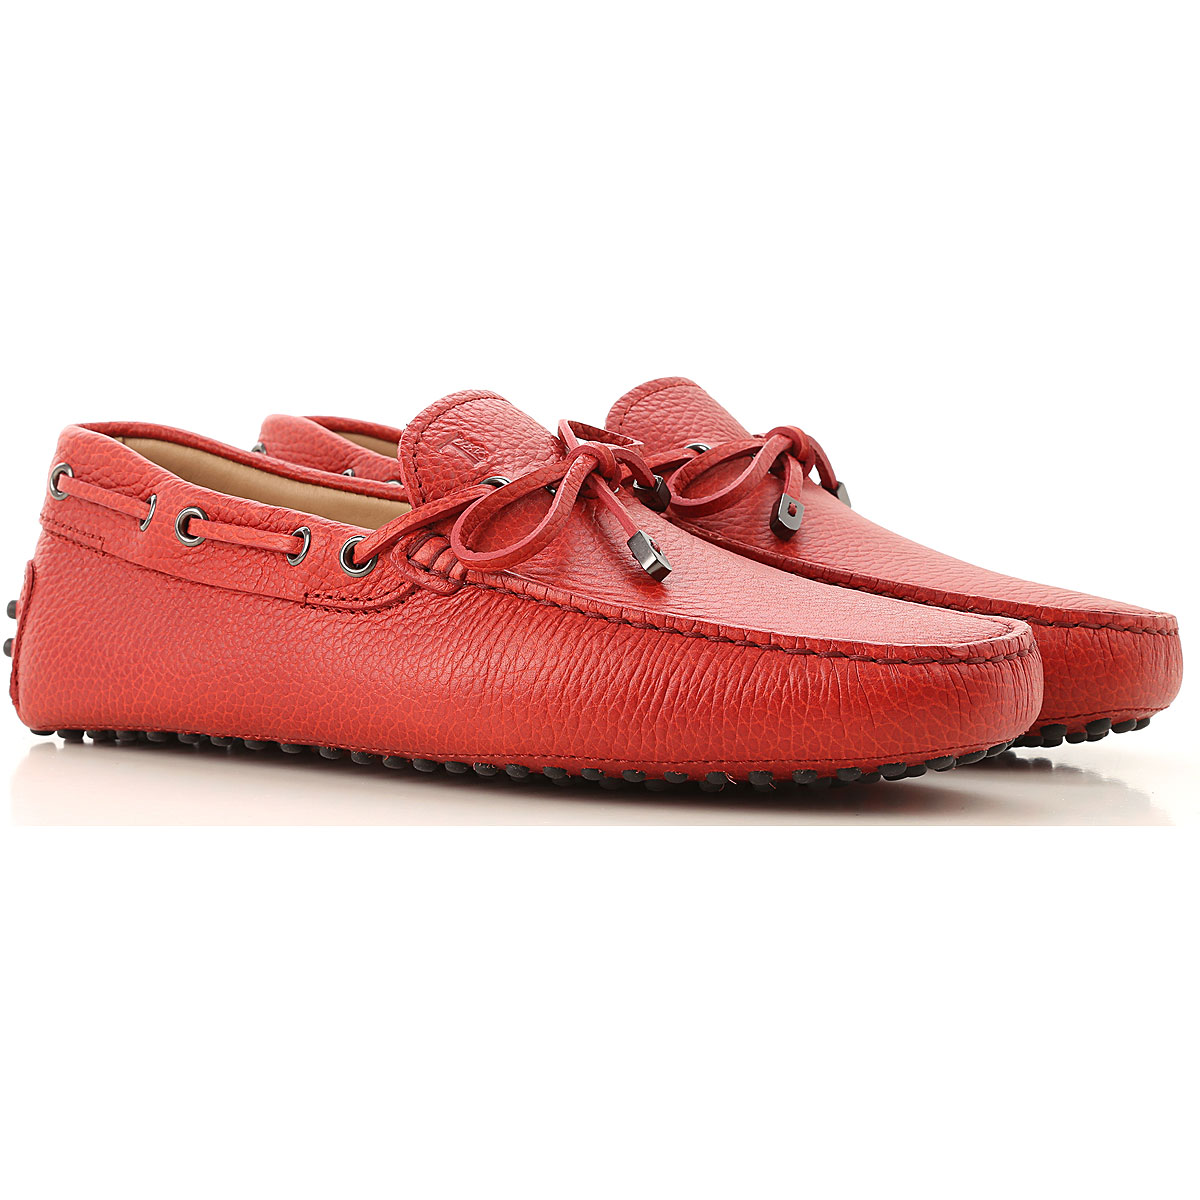 Tods Loafers for Men On Sale Red SE - GOOFASH